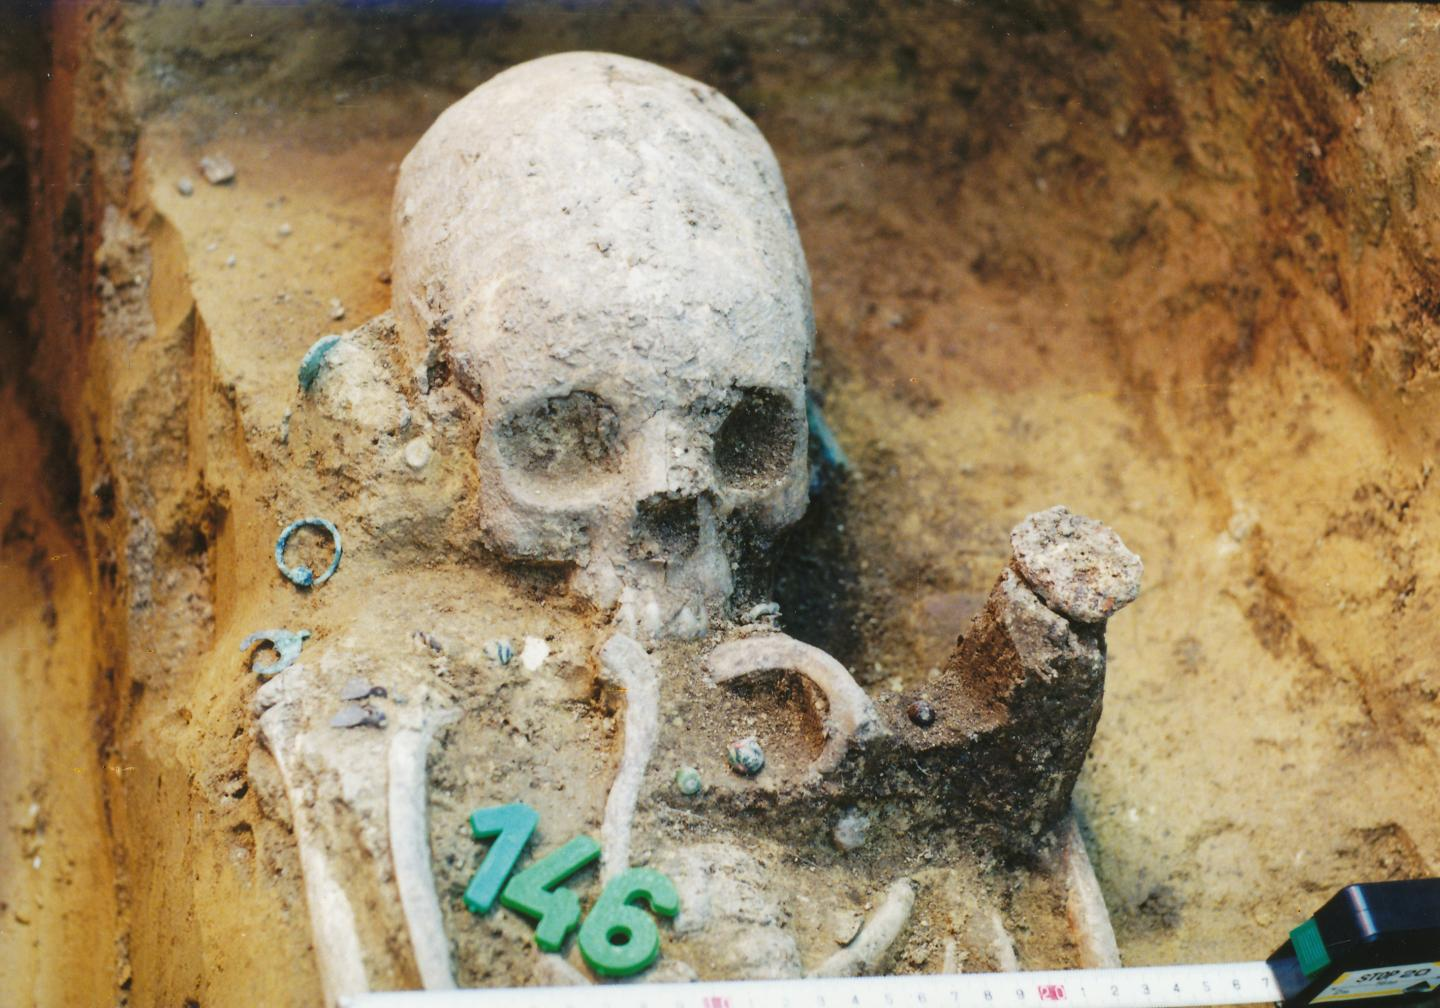 Deformed skulls in an ancient cemetery reveal a multicultural community in transition